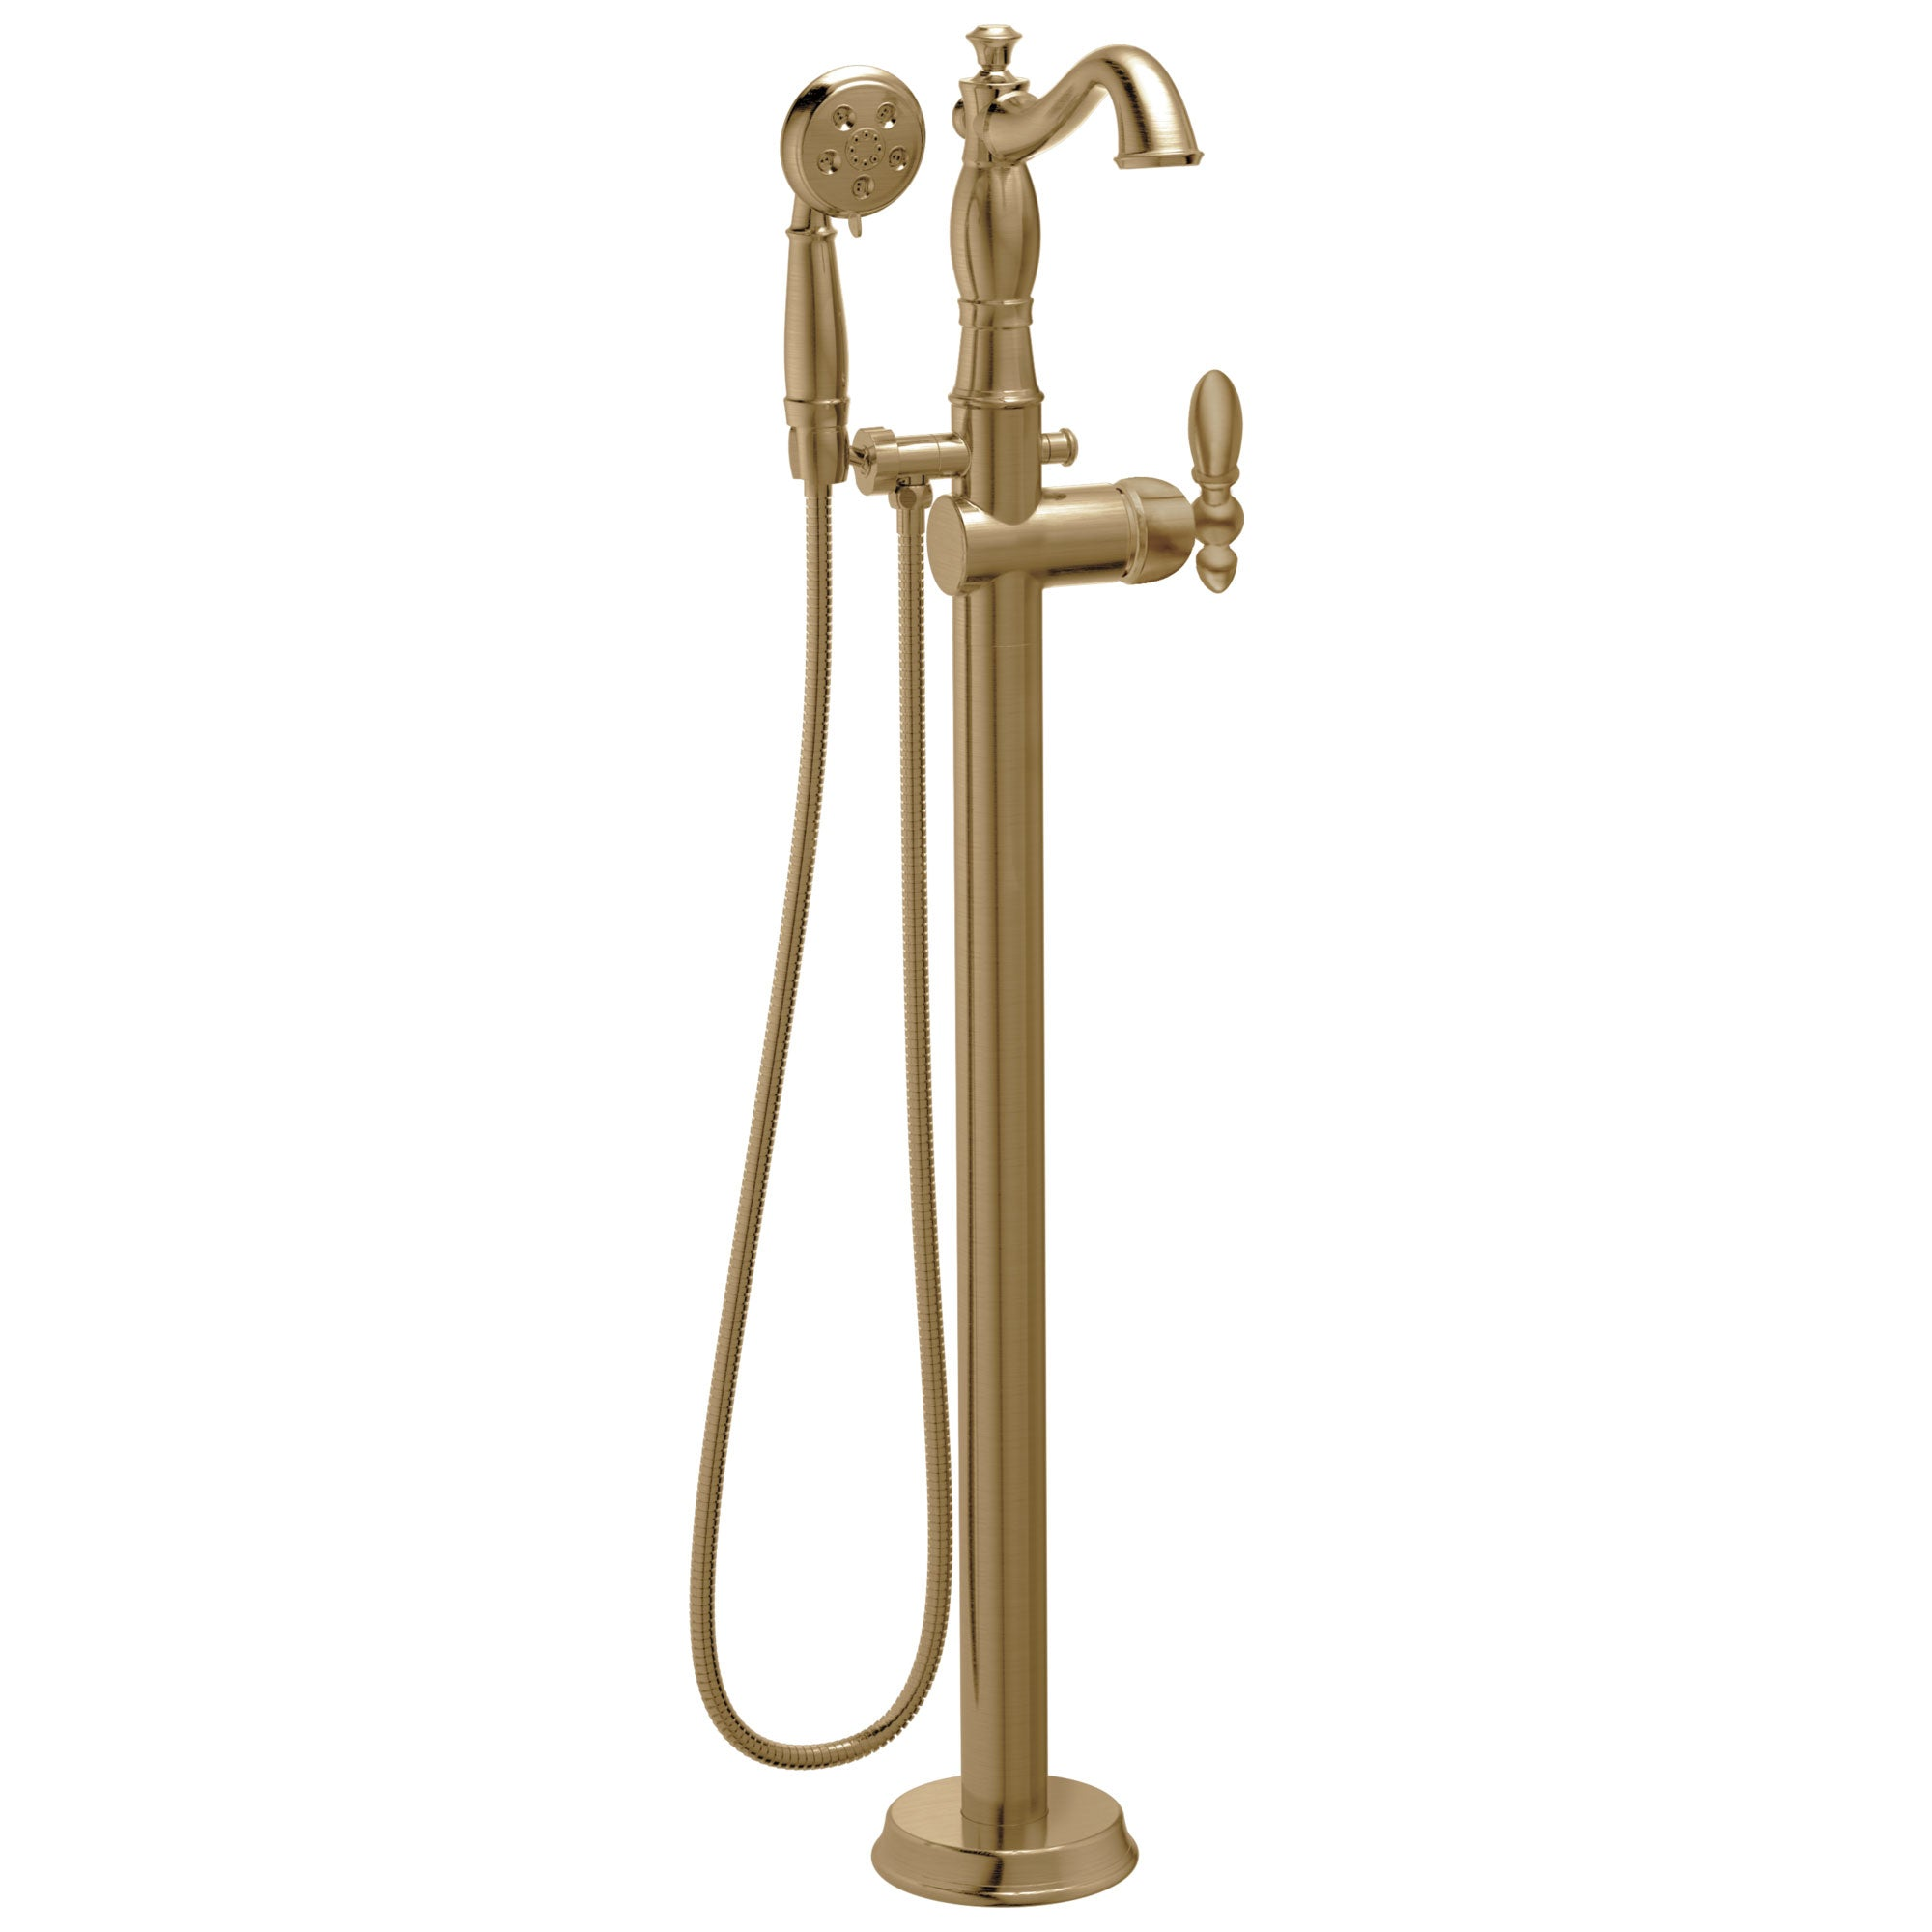 Delta Victorian Freestanding Floor-Mount Tub Filler Faucet with Sprayer in Champagne Bronze INCLUDES Single Lever Handle and Rough-in Valve D2571V